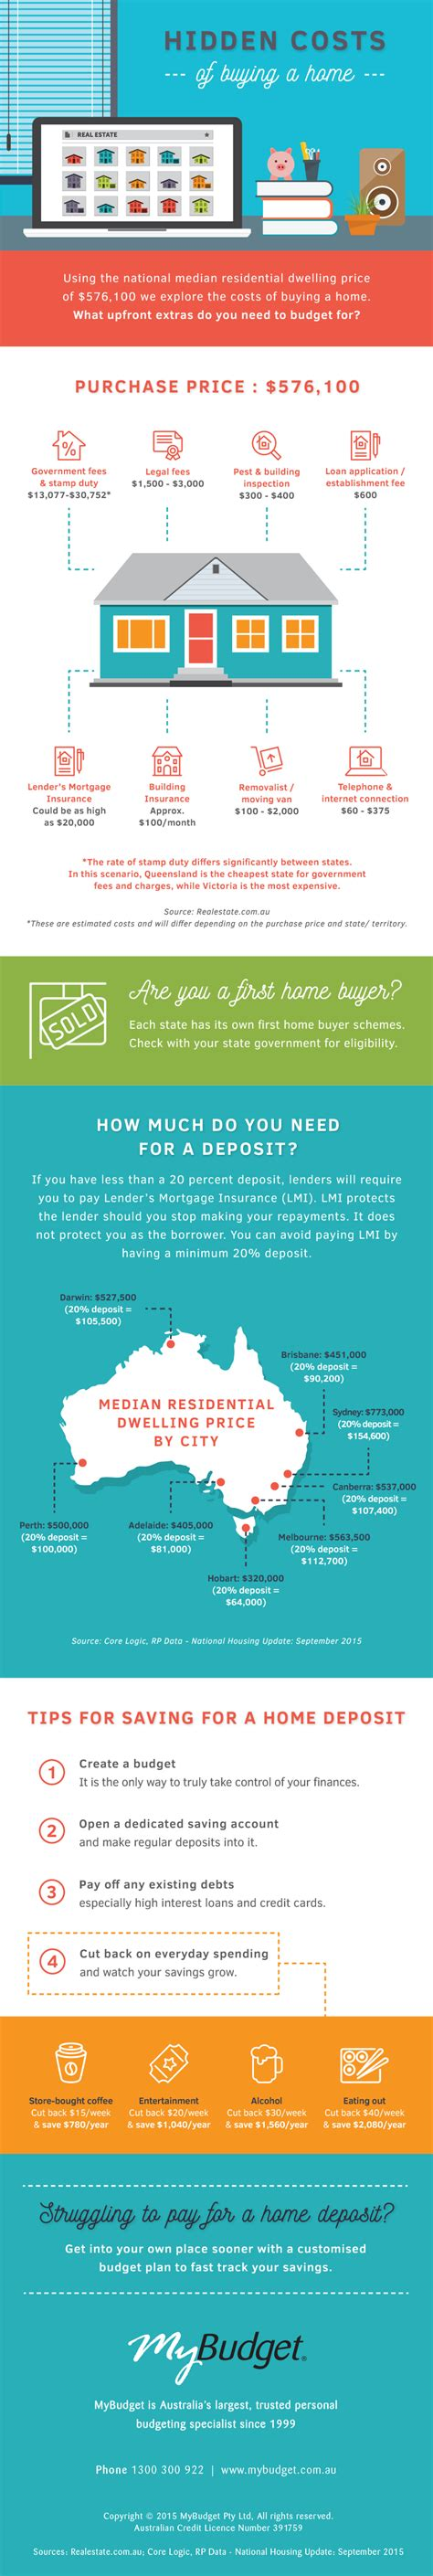 what is the typical deposit for buying a house mybudget blog hidden costs of buying a home infographic